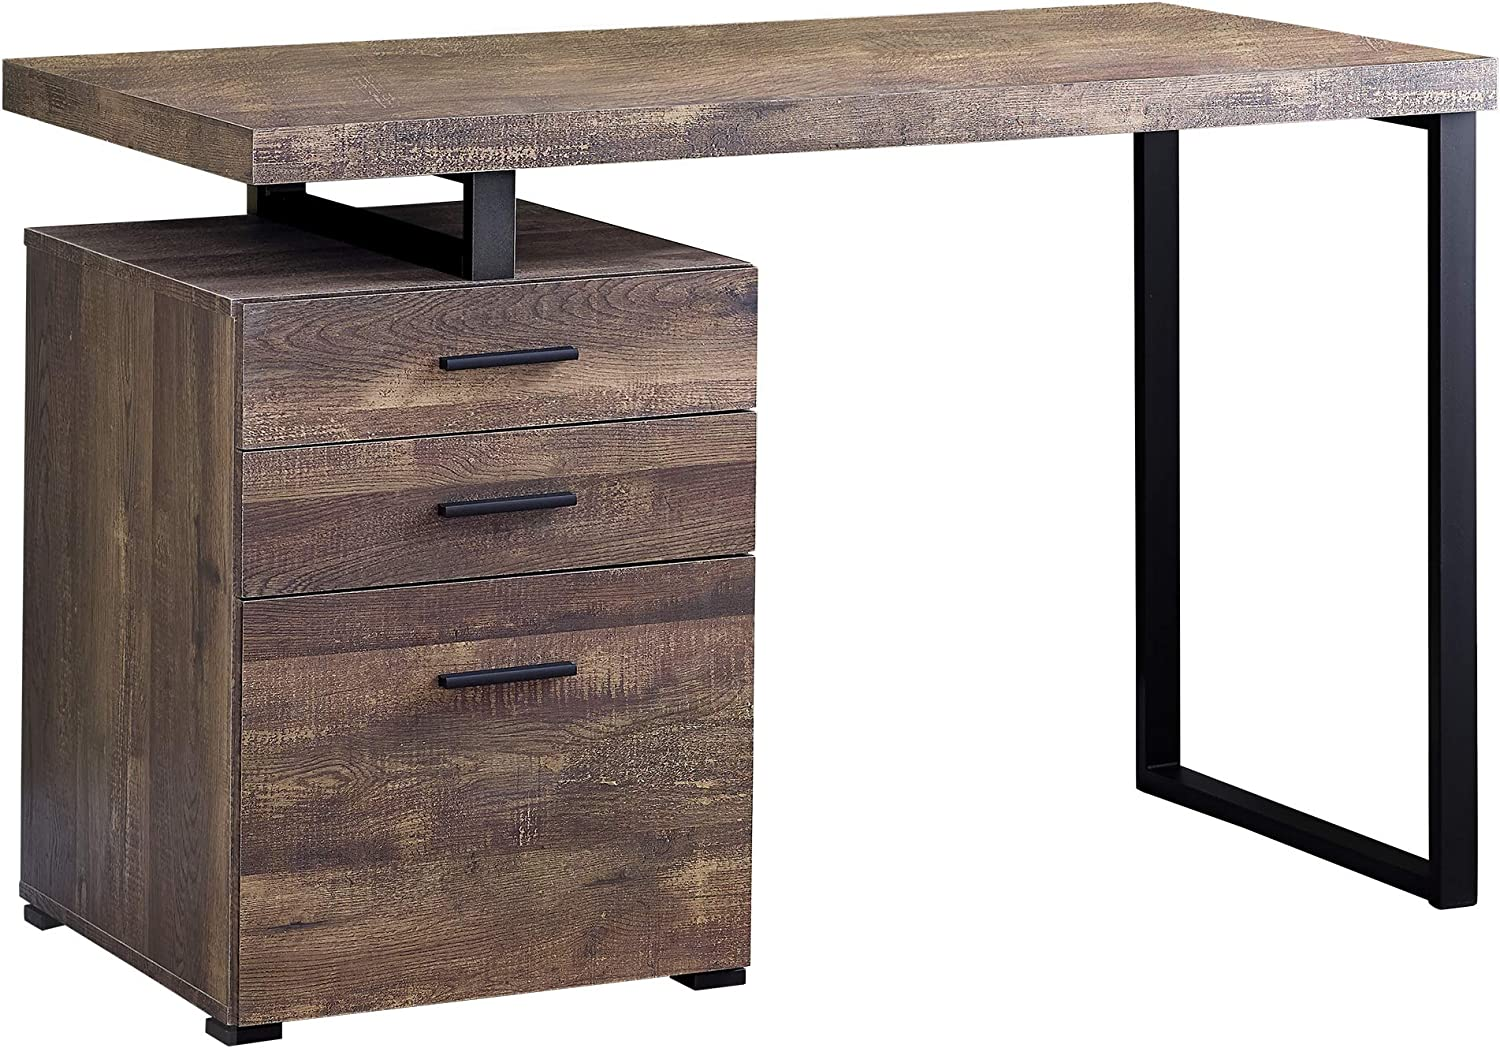 Lef or Right Set- Up Black - Grey Top Monarch Specialties Computer Desk with File Cabinet 48 L